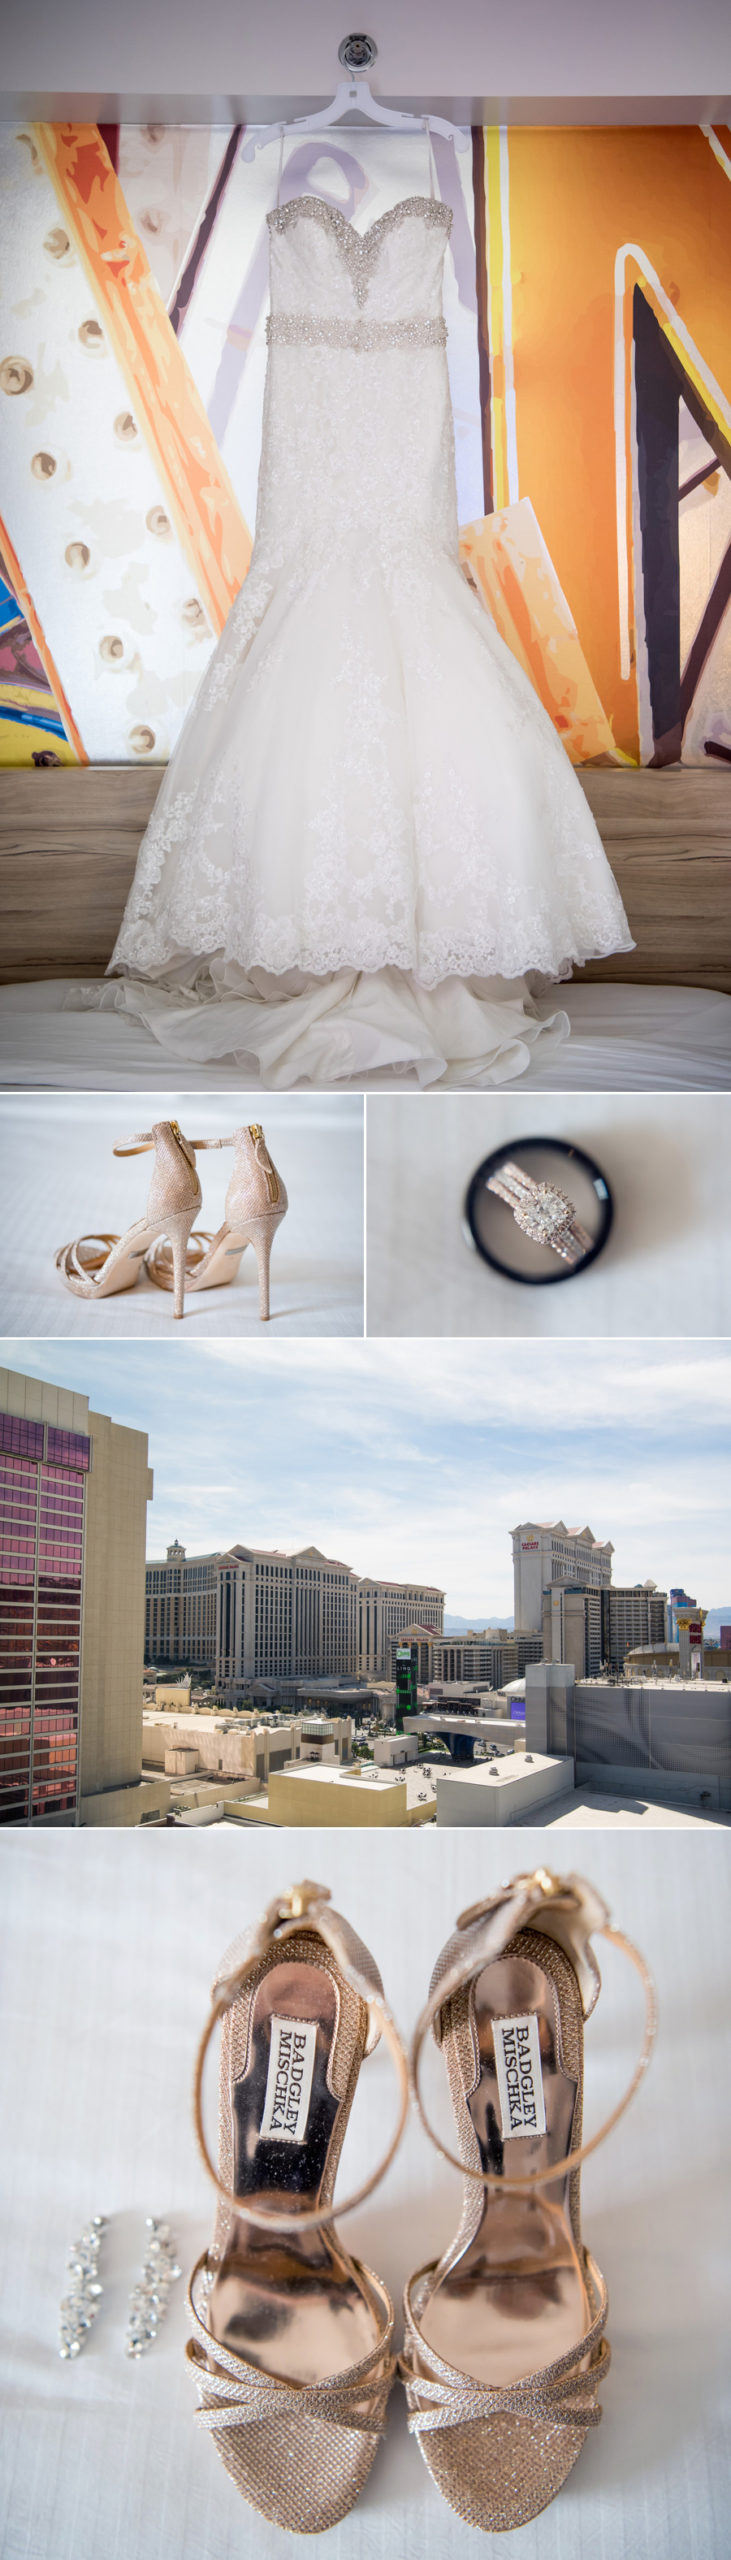 KMH Photography | Linq Hotel, Neon Museum & Downtown Las Vegas Destination Wedding